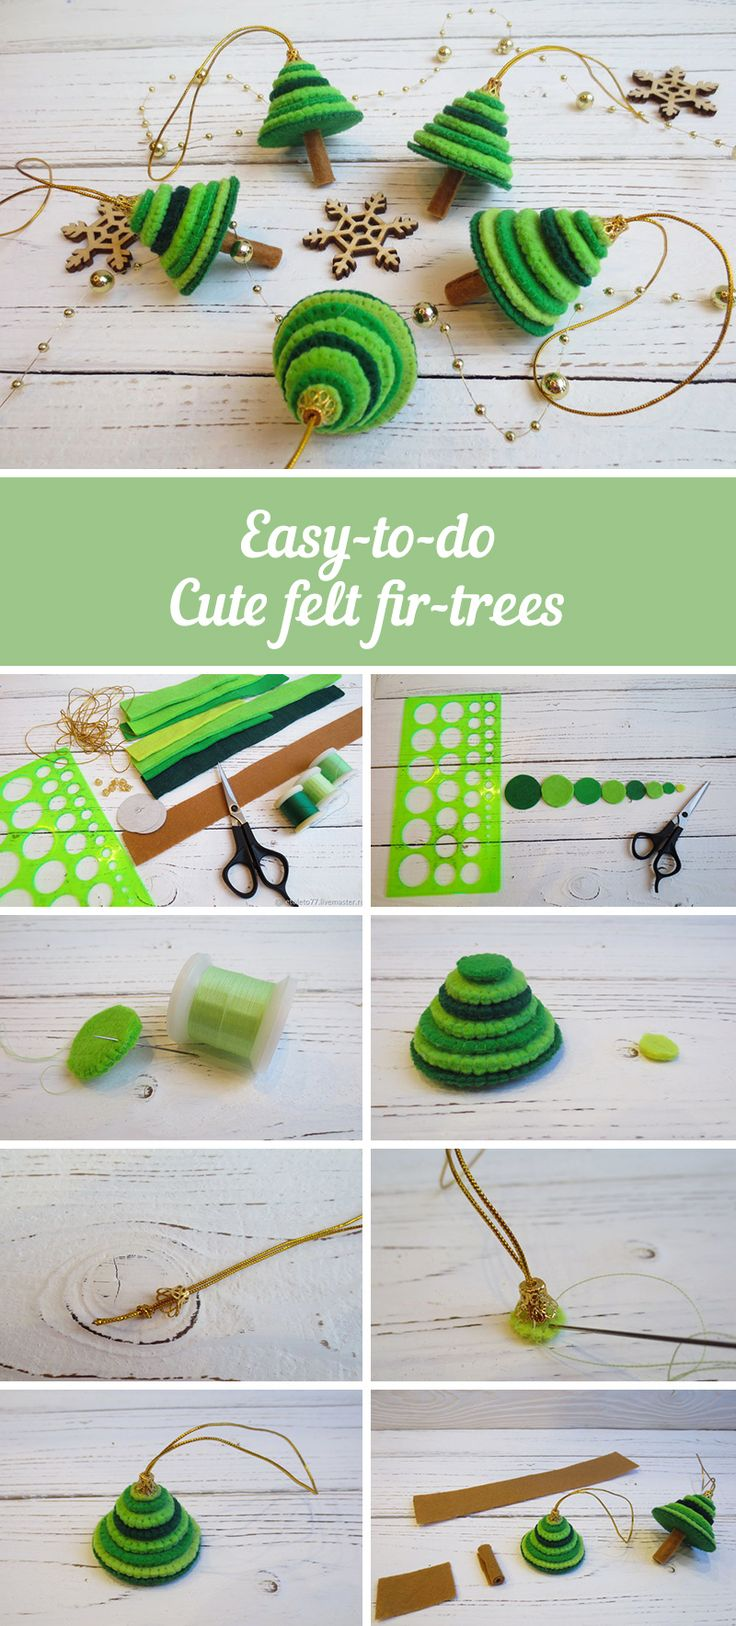 How to make tiny felt fir-trees | Мастерим…